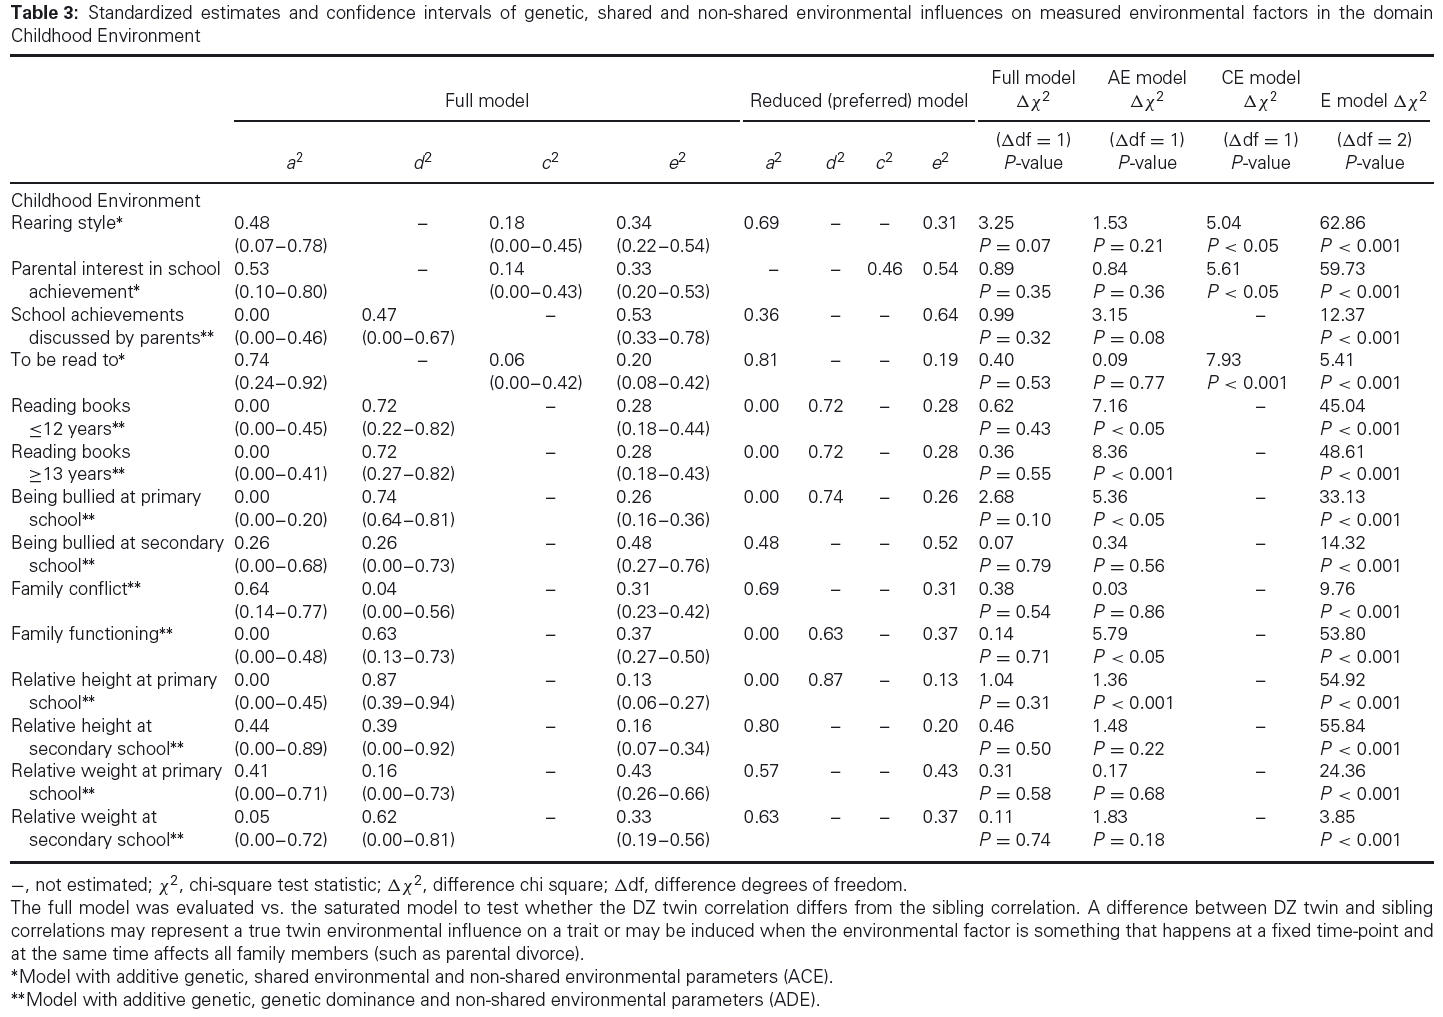 genetics and heredity influences In behavioral genetics, environmental influences that cause family members to be similar are by definition shared, and those influences that cause family members to be different are nonshared in the case of twins, the prenatal environment can typically be considered shared, since the developmental conditions experienced are nearly identical.